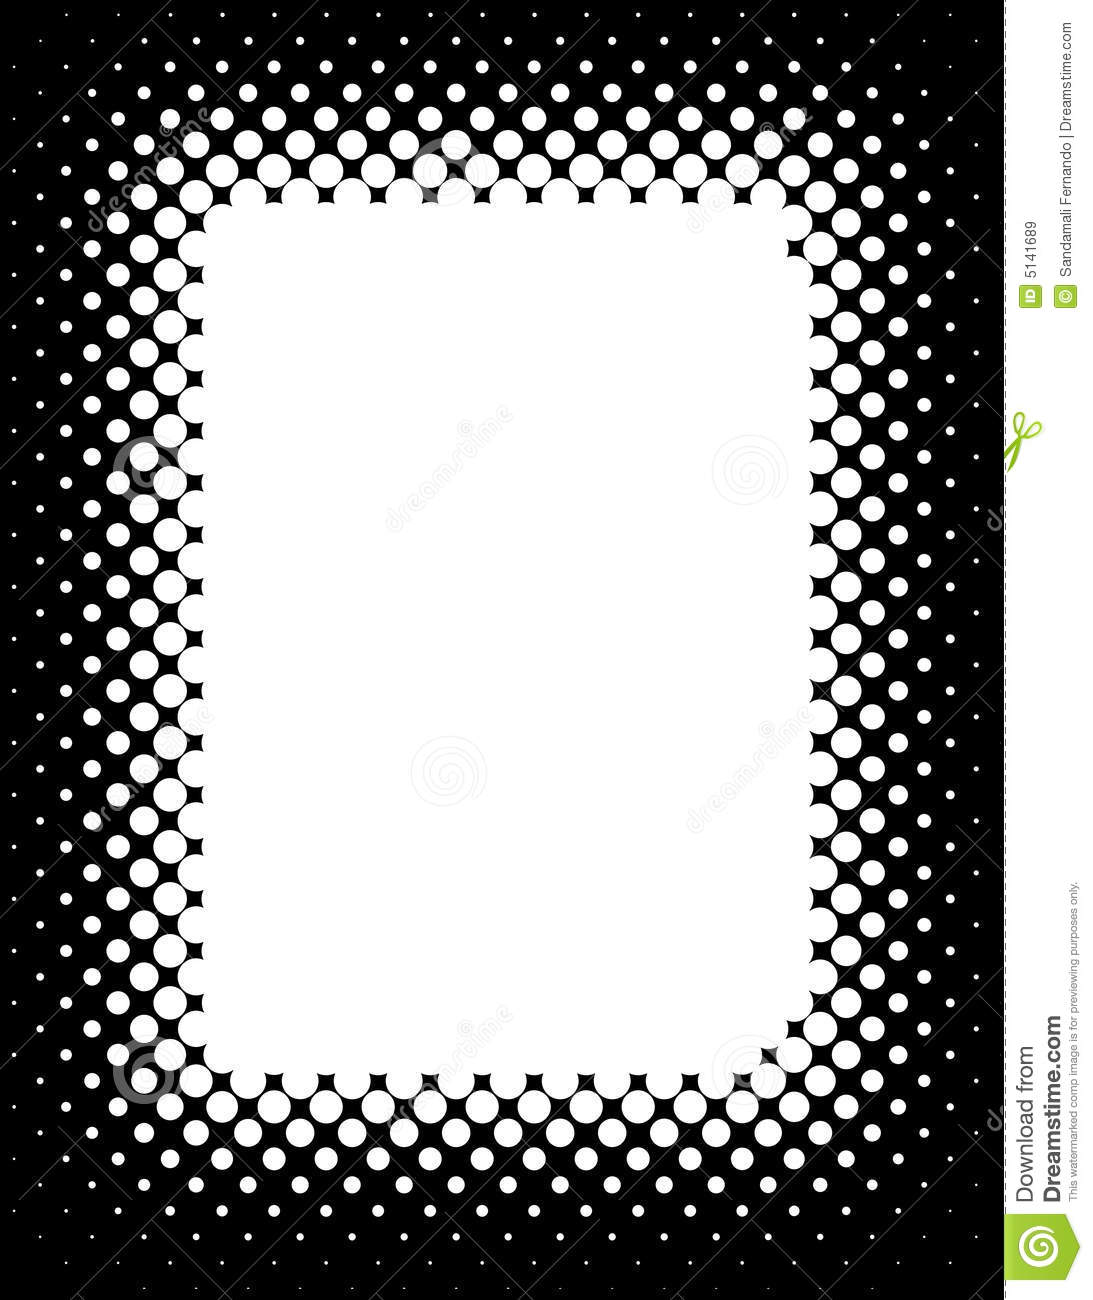 Halftone Border Royalty Free Stock Images - Image: 5141689